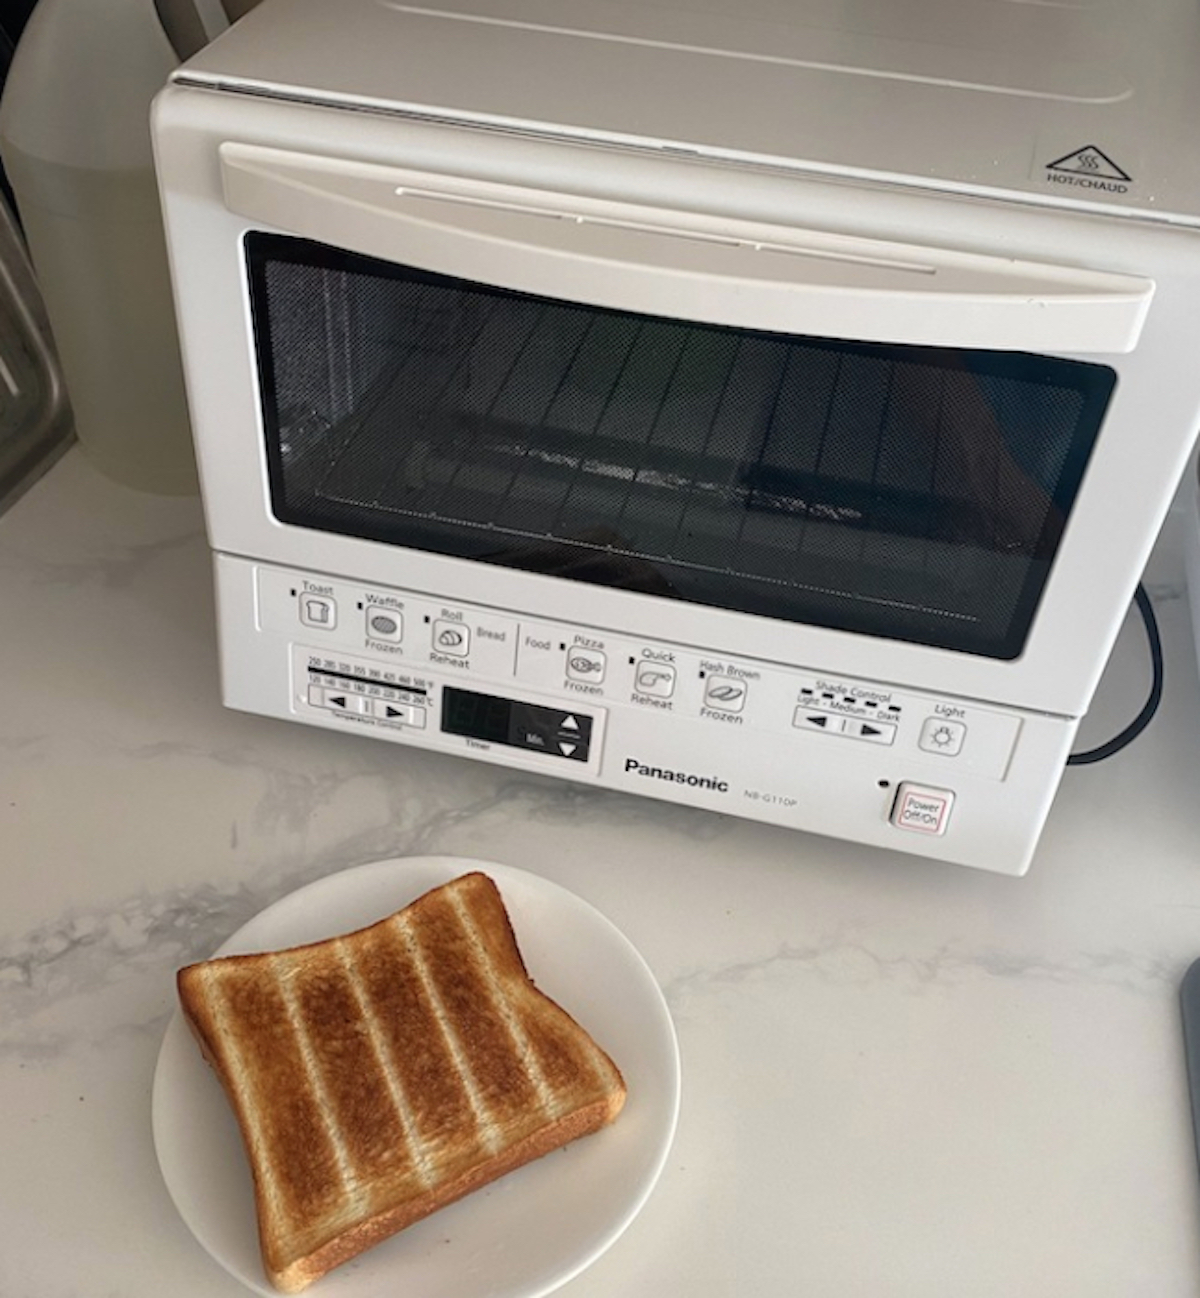 white kitchen appliance on marble counter with piece of toast